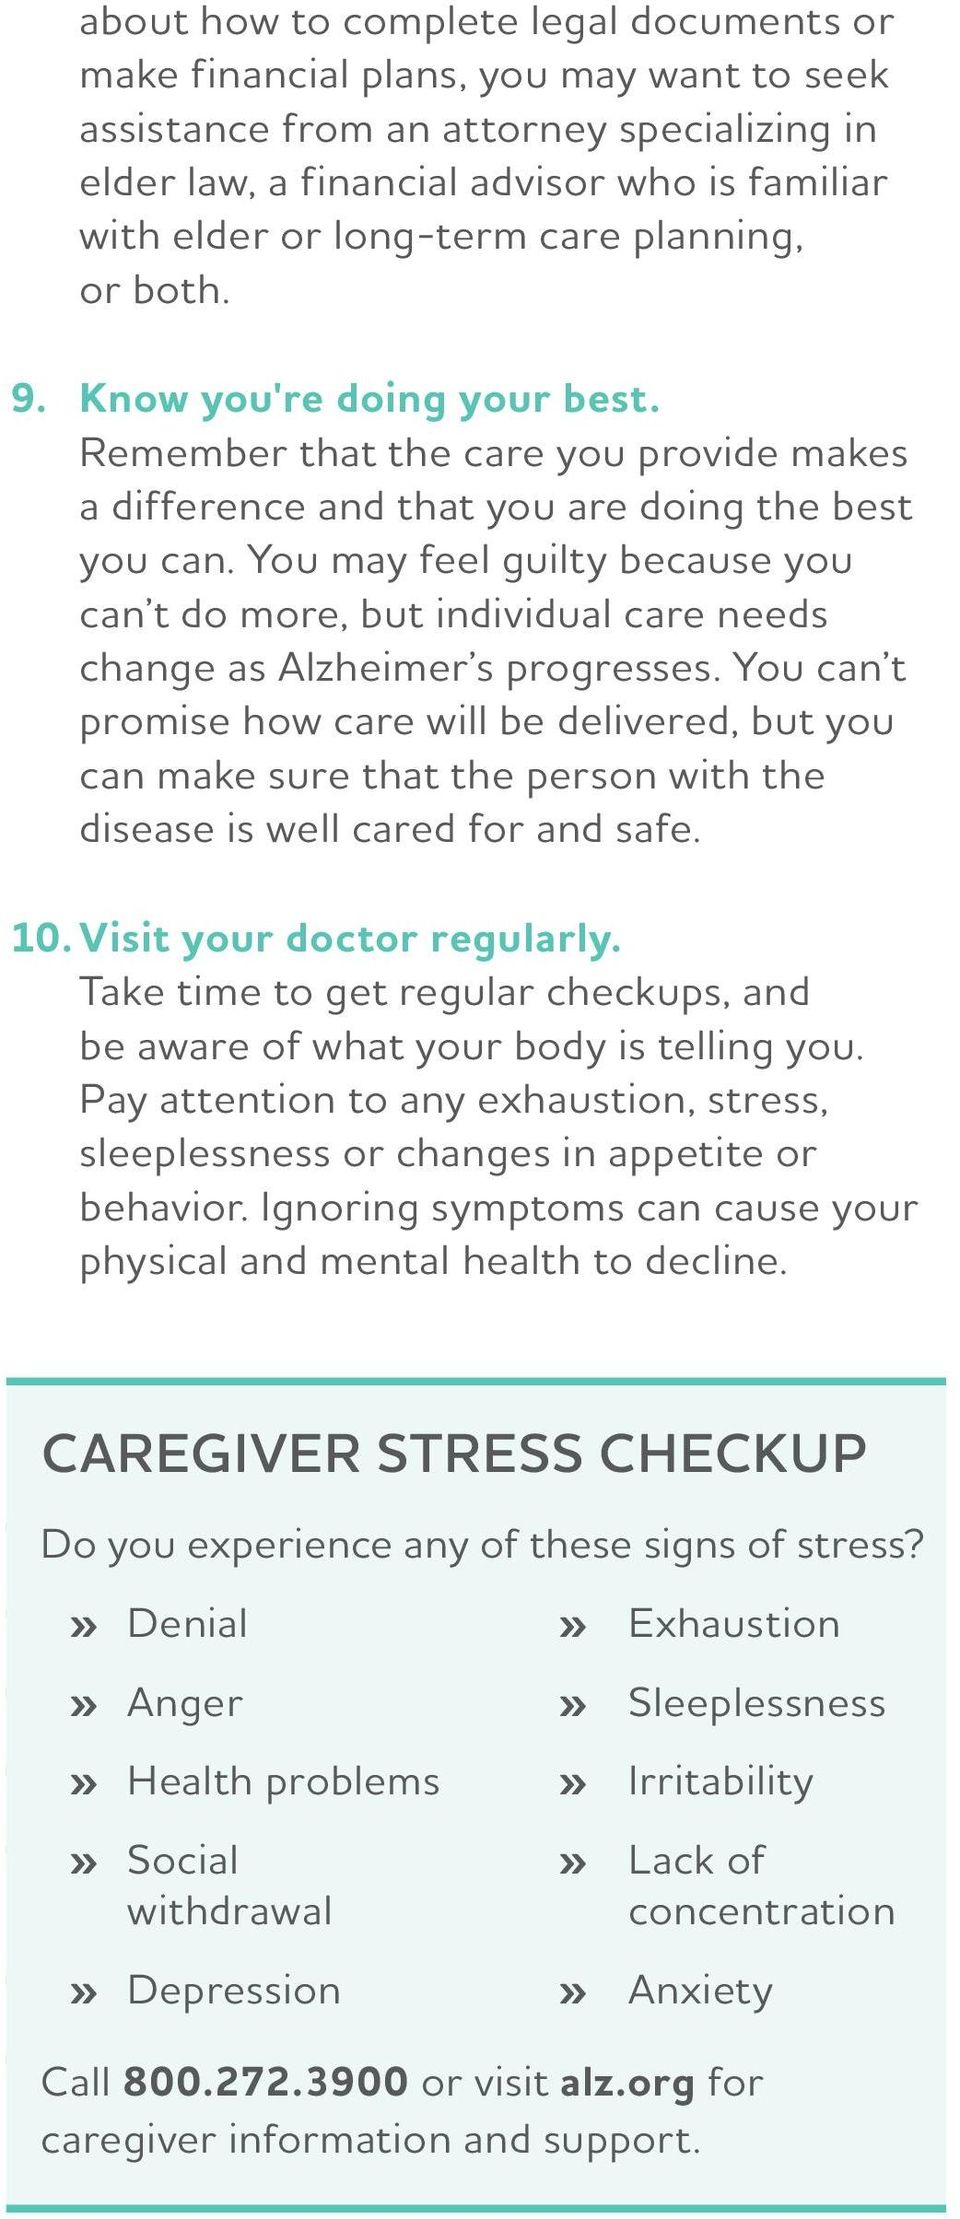 You may feel guilty because you can t do more, but individual care needs change as Alzheimer s progresses.